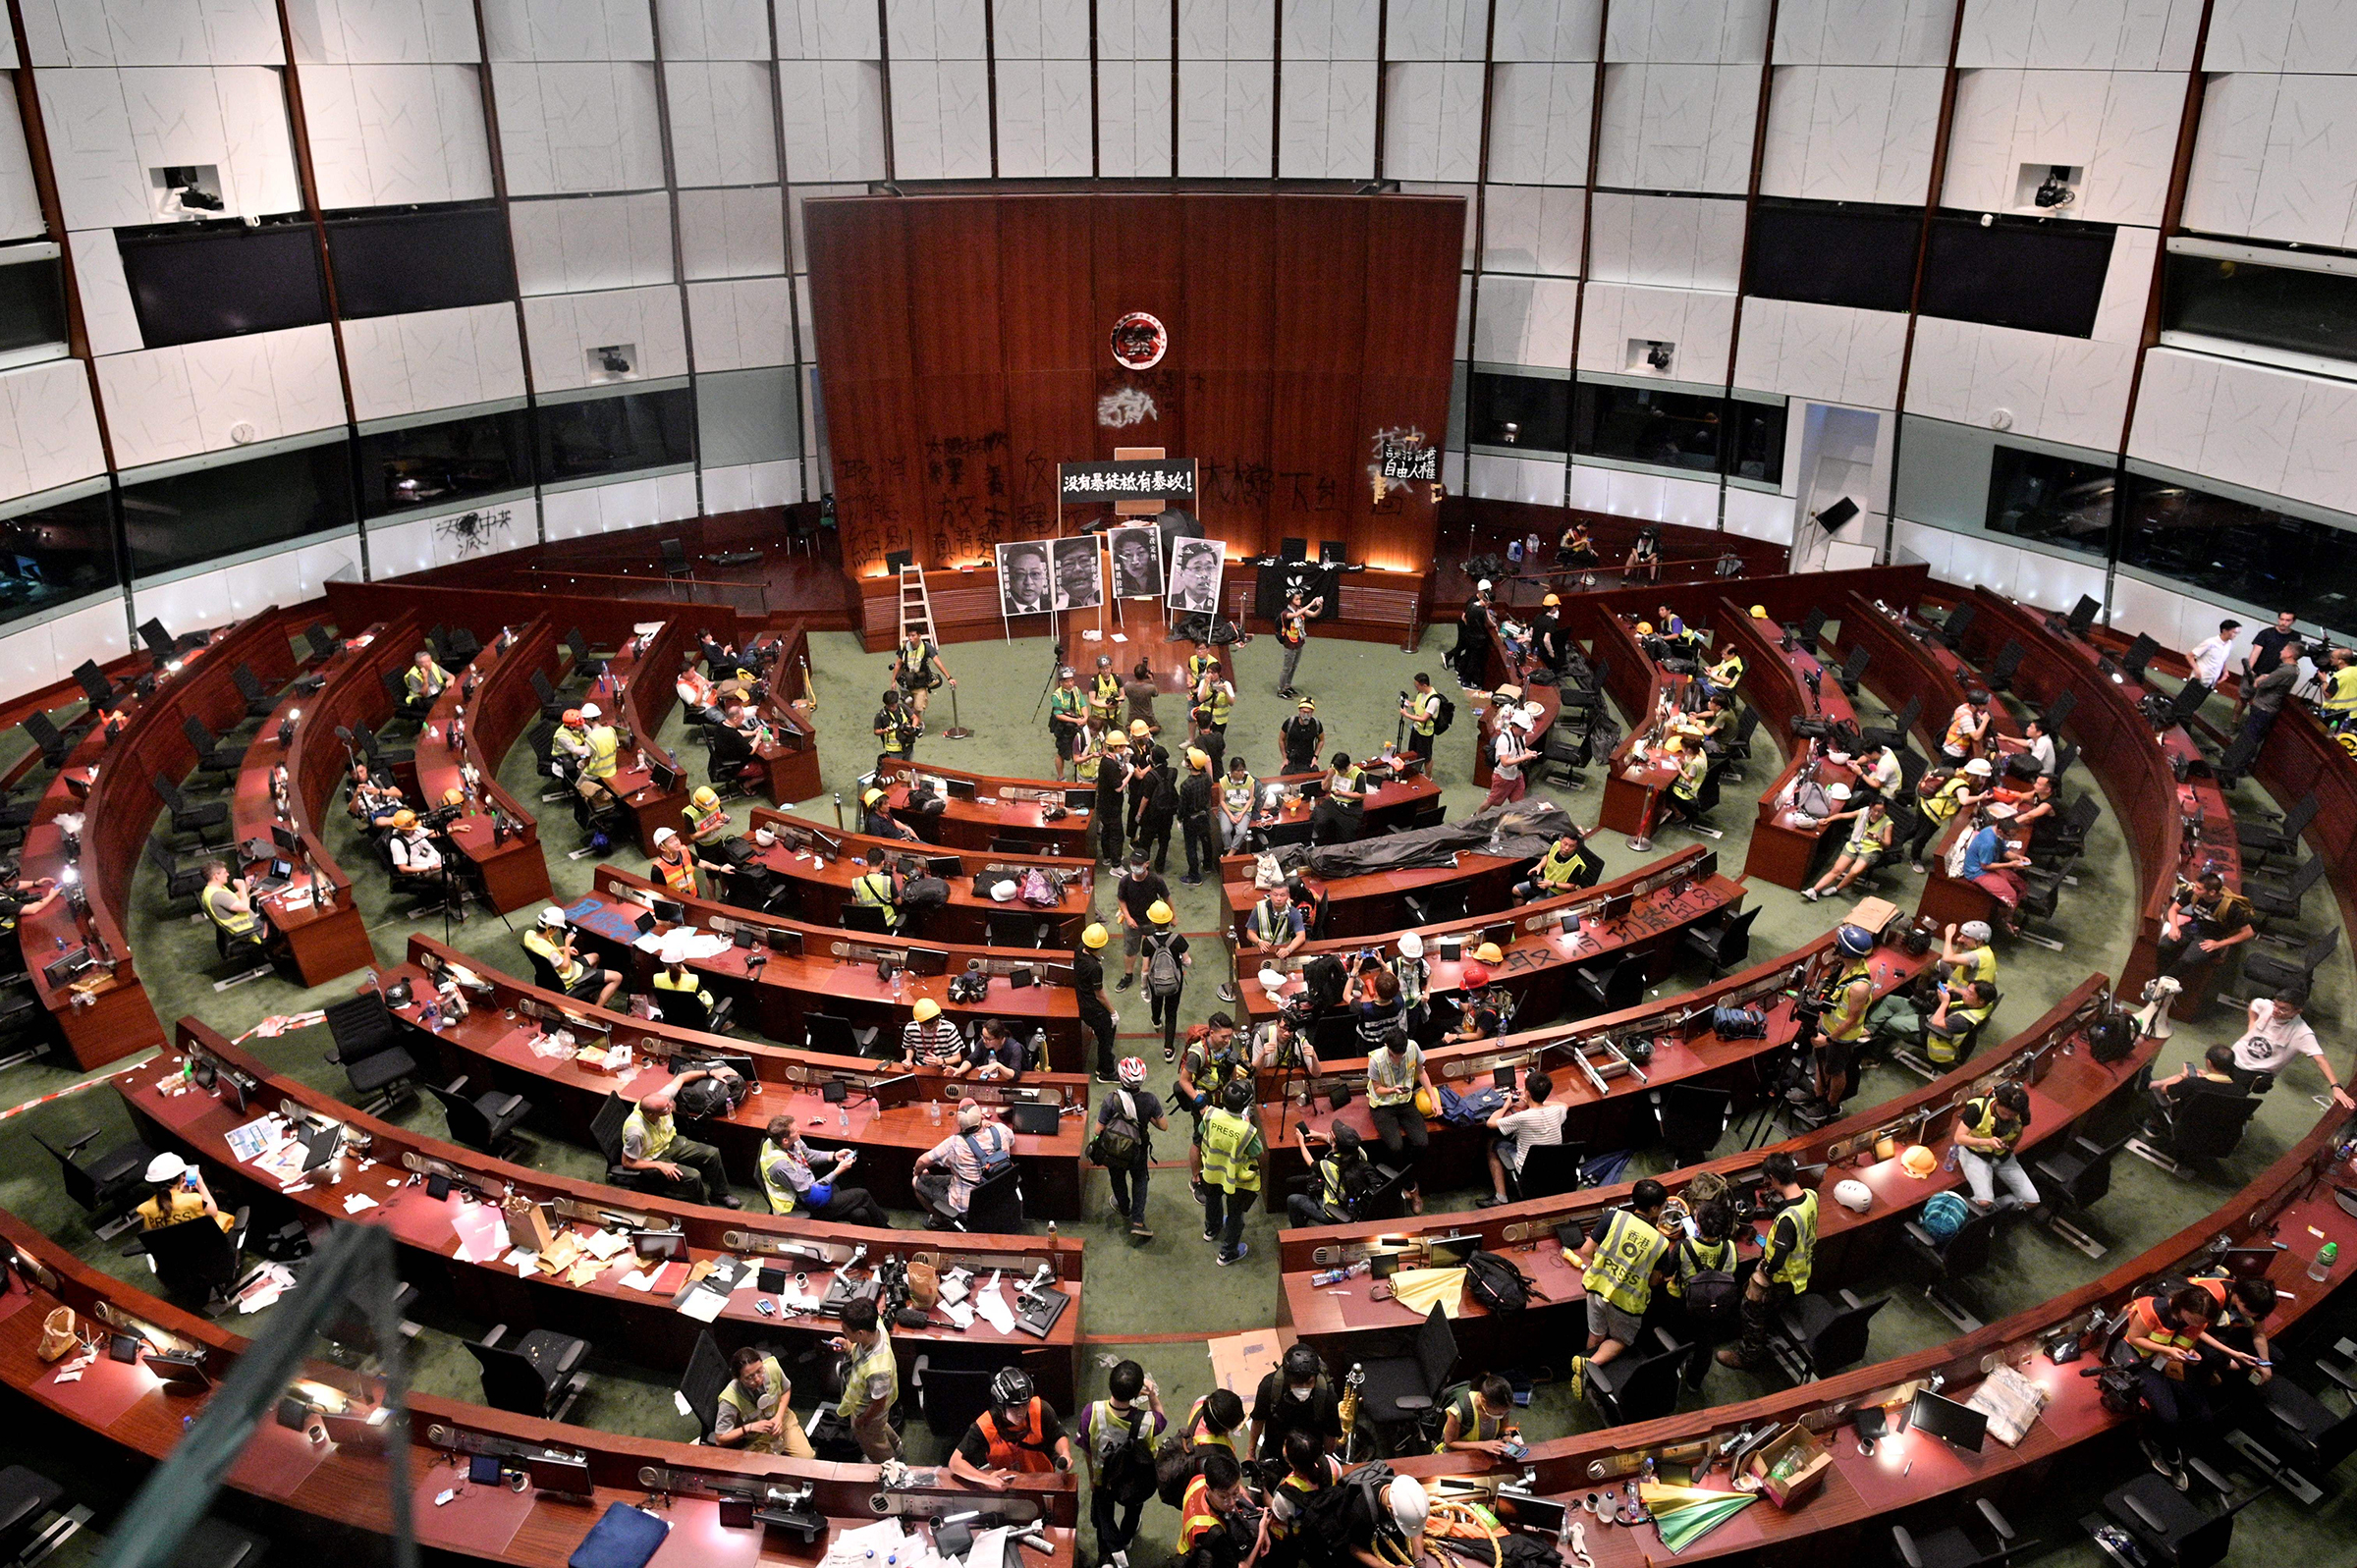 Protesters and members of the media are seen in the chambers after demonstrators broke into the government headquarters in Hong Kong on July 1, 2019.